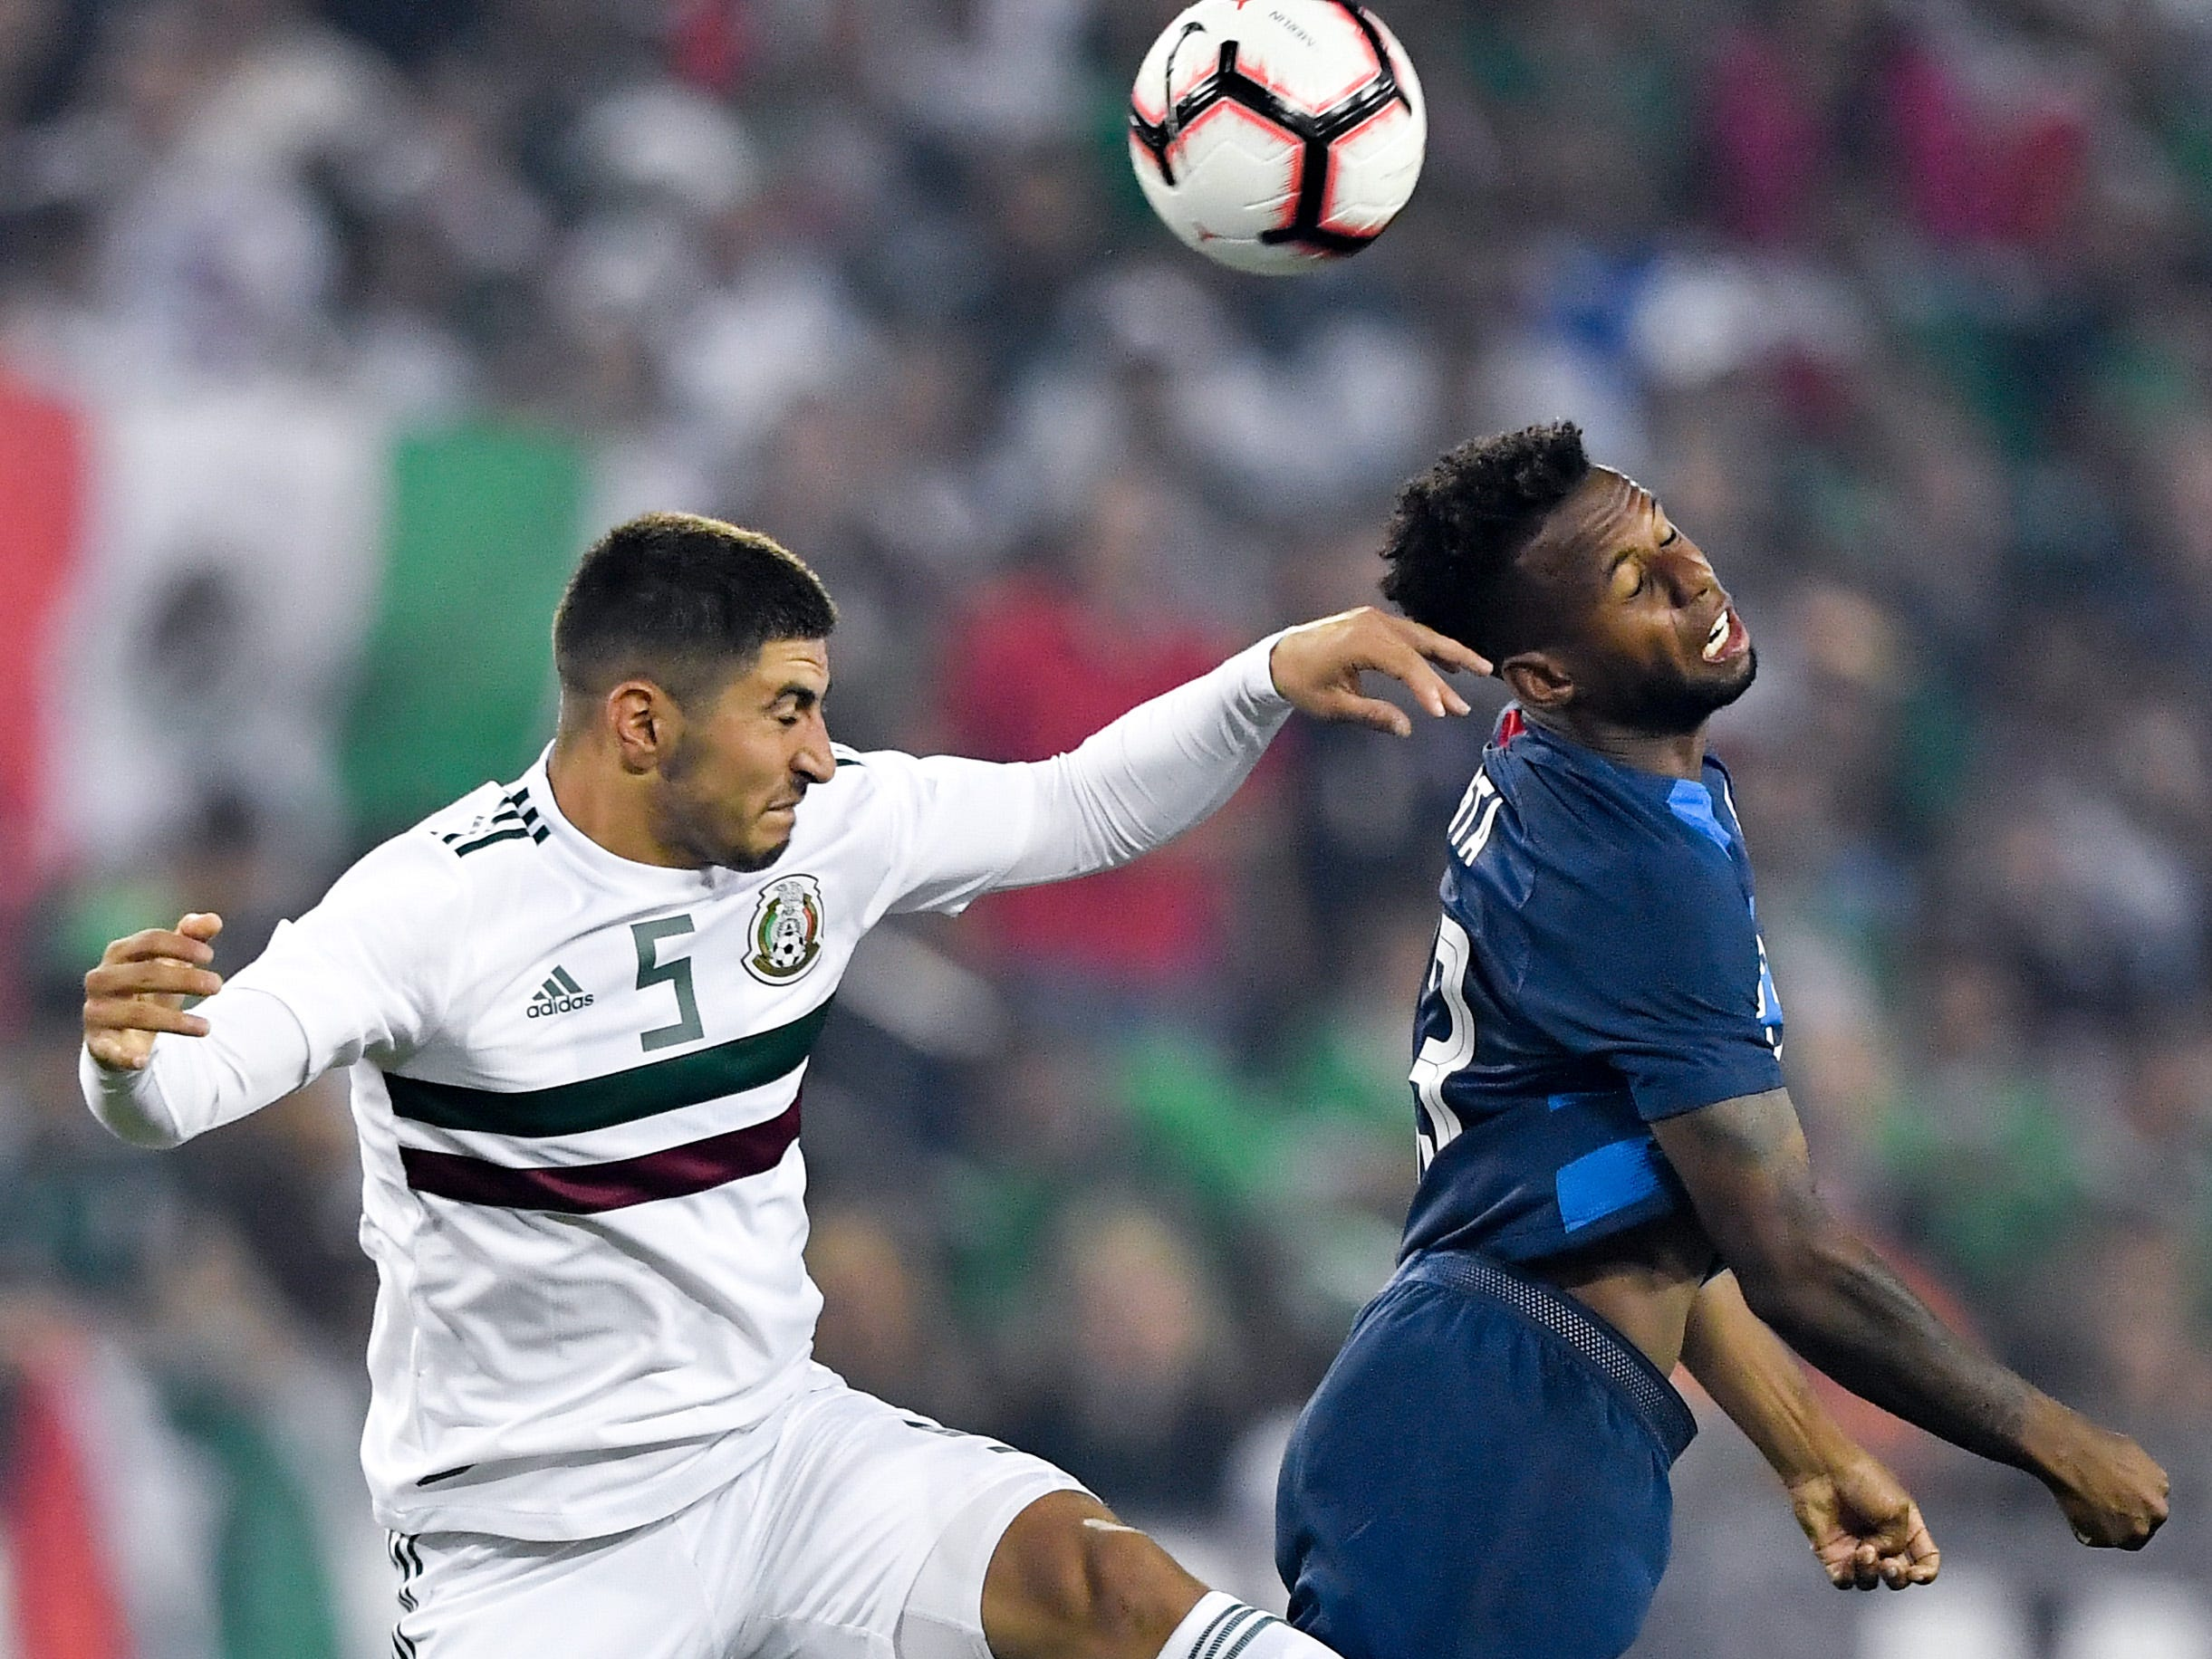 Mexico midfielder Victor Guzman (5) and USA midfielder Kellyn Acosta (23) go for a header during the first half at Nissan Stadium in Nashville, Tenn., Tuesday, Sept. 11, 2018.